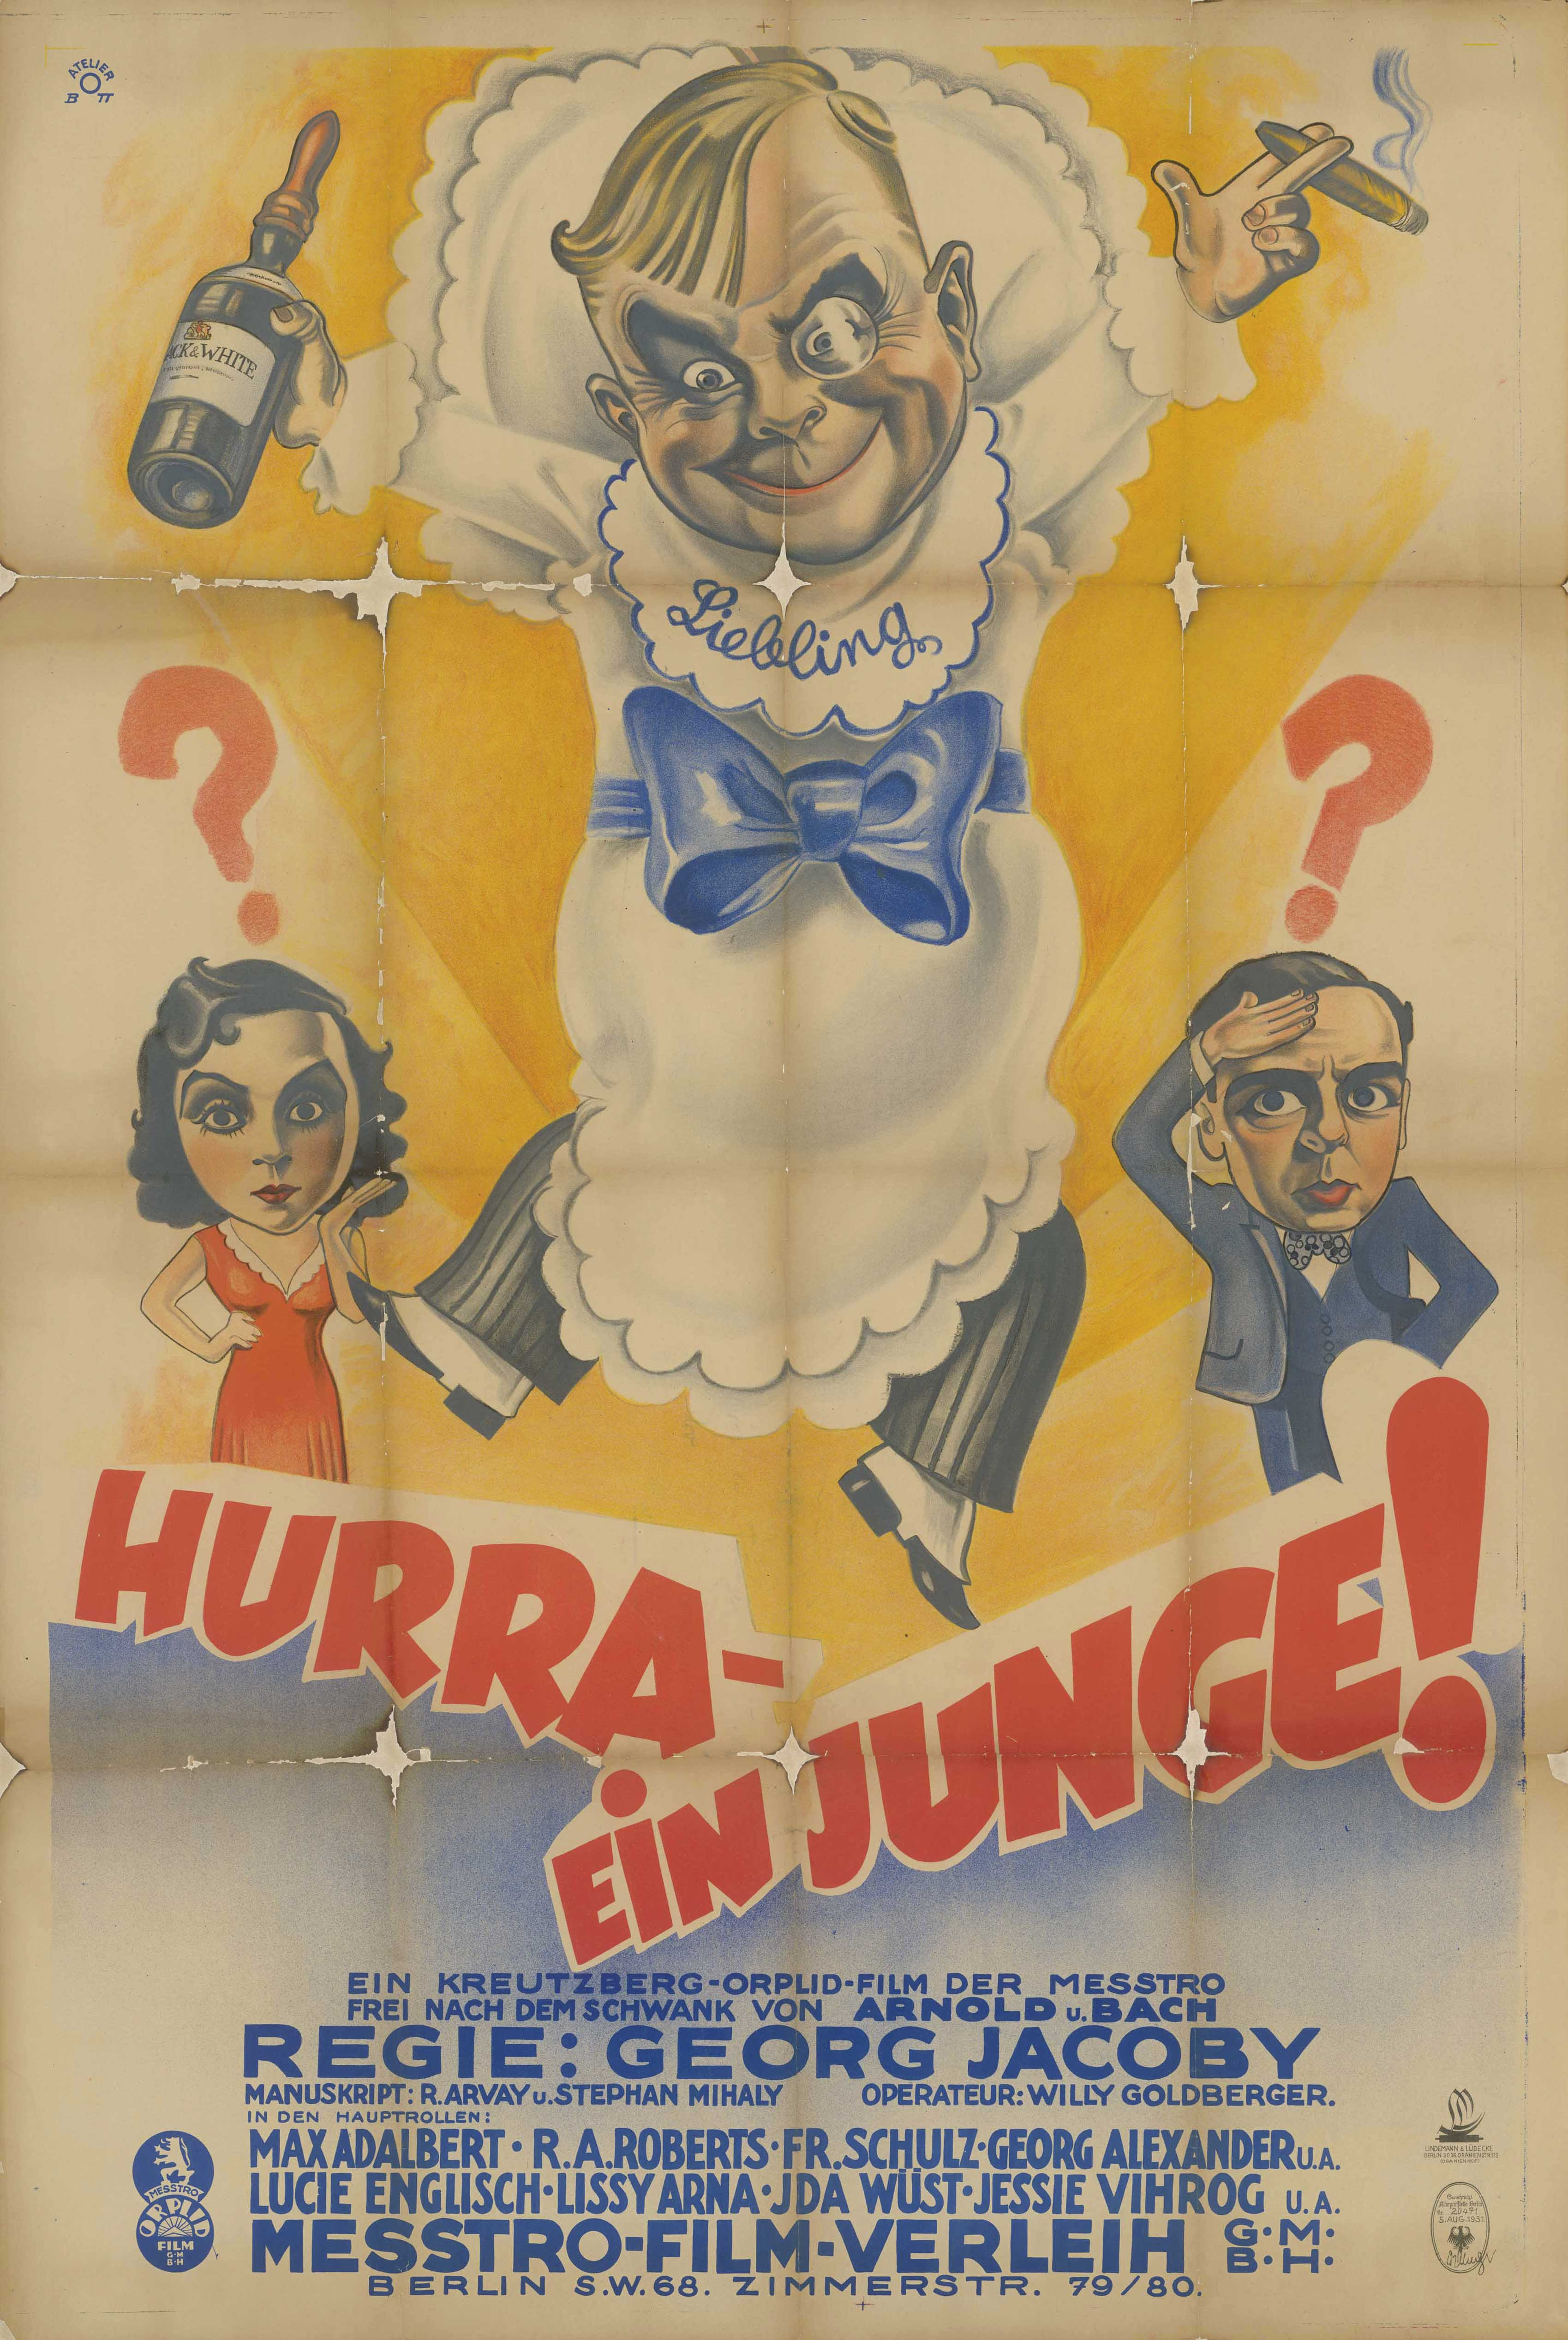 Film poster for Hurra – ein Junge!, Germany 1931